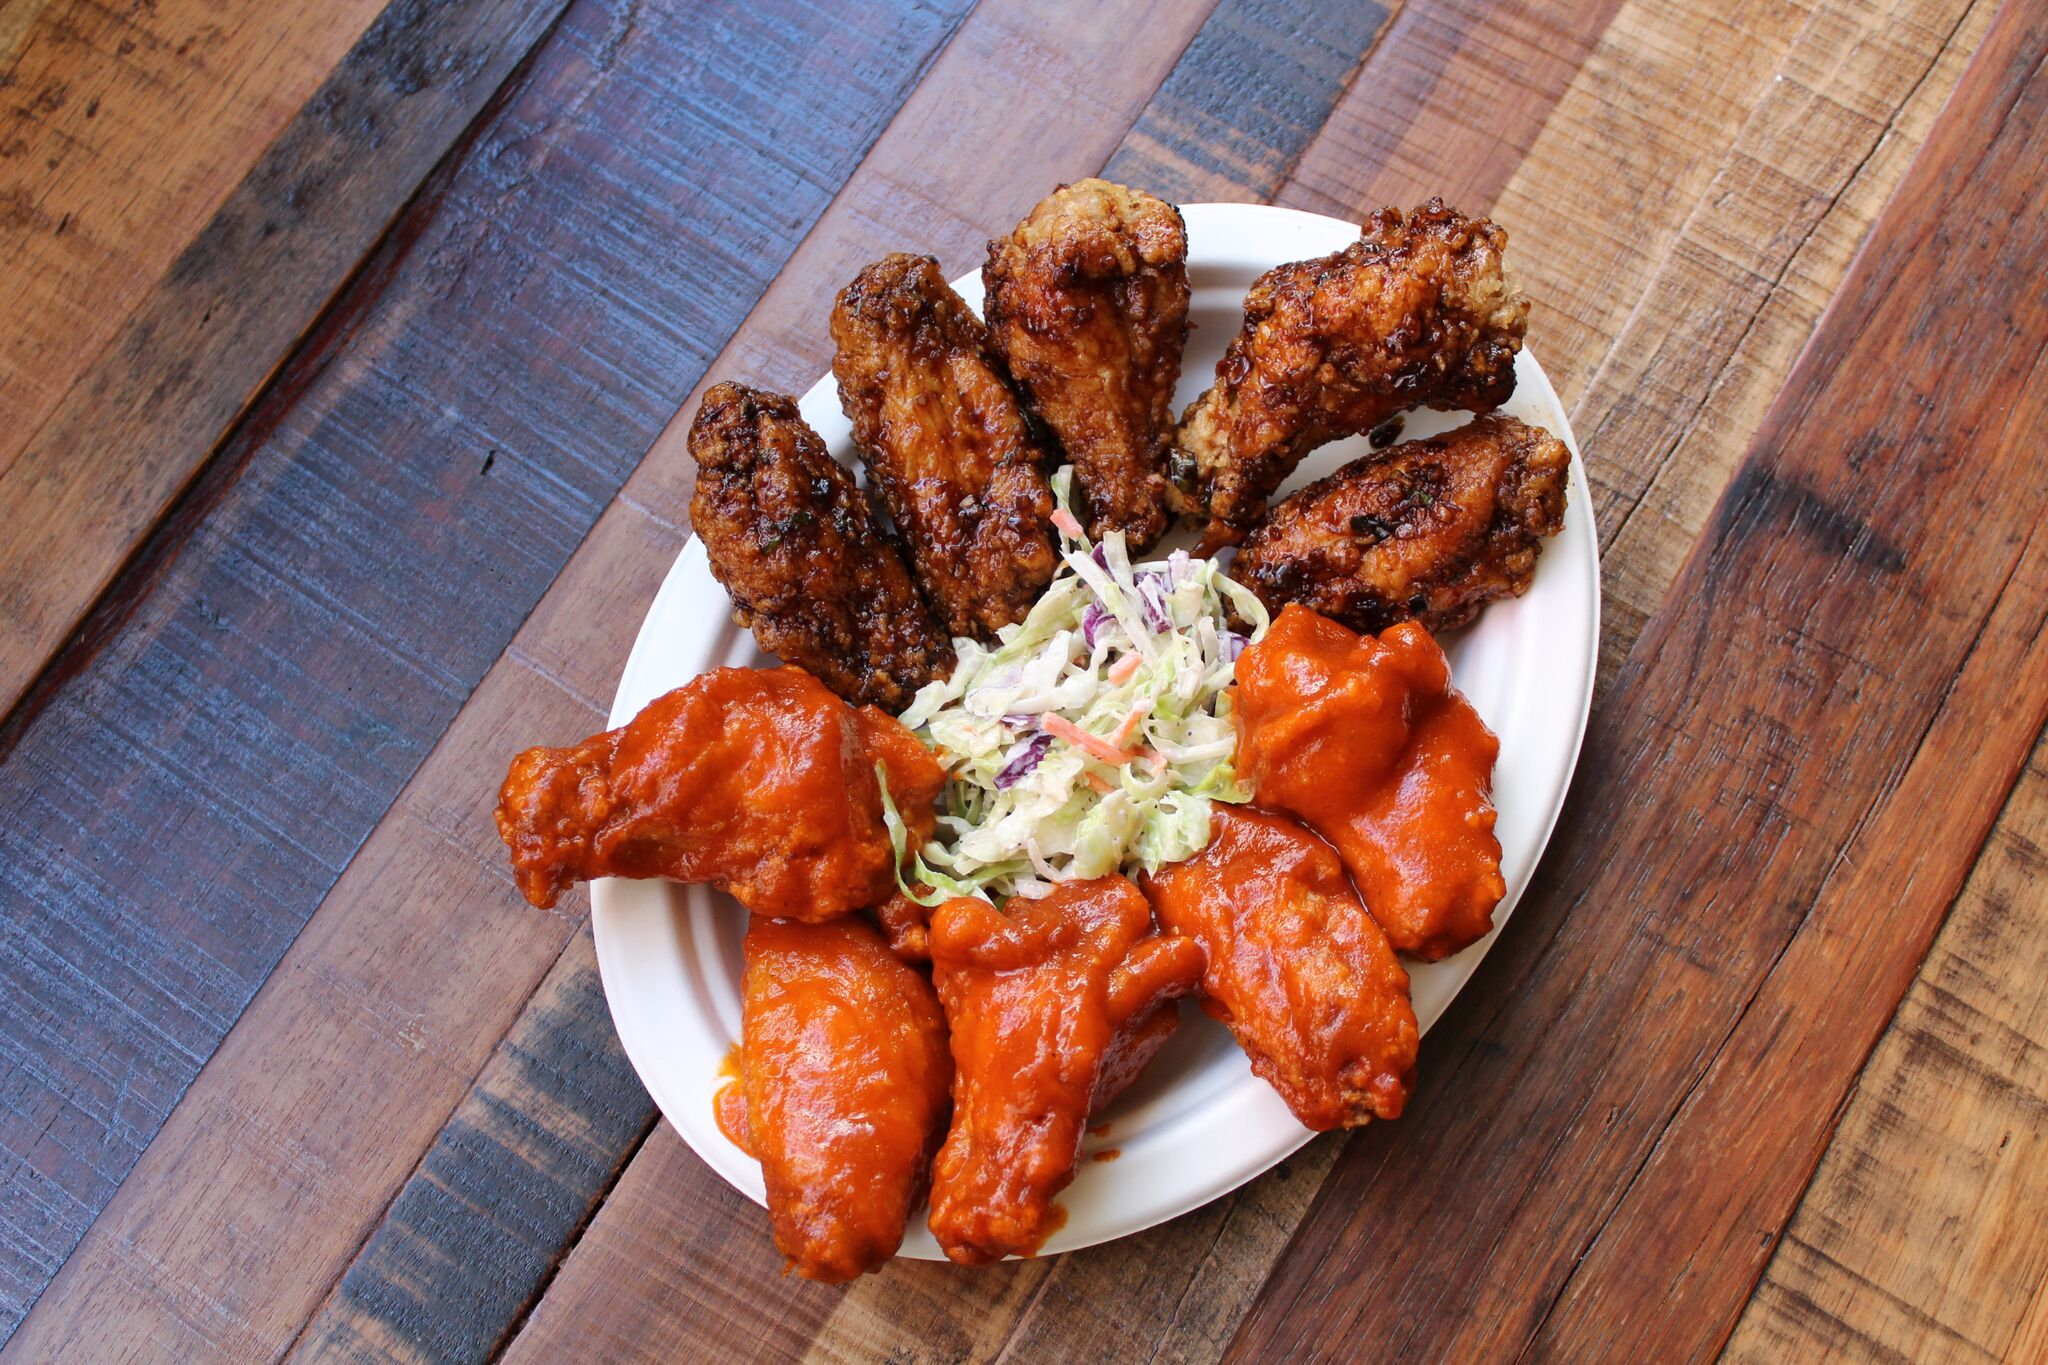 Bring your best wingman to devour some cluckin' good wings together at WINGMAN, located at 4th Street Market in downtown Santa Ana, CA | photo courtesy of 100eats